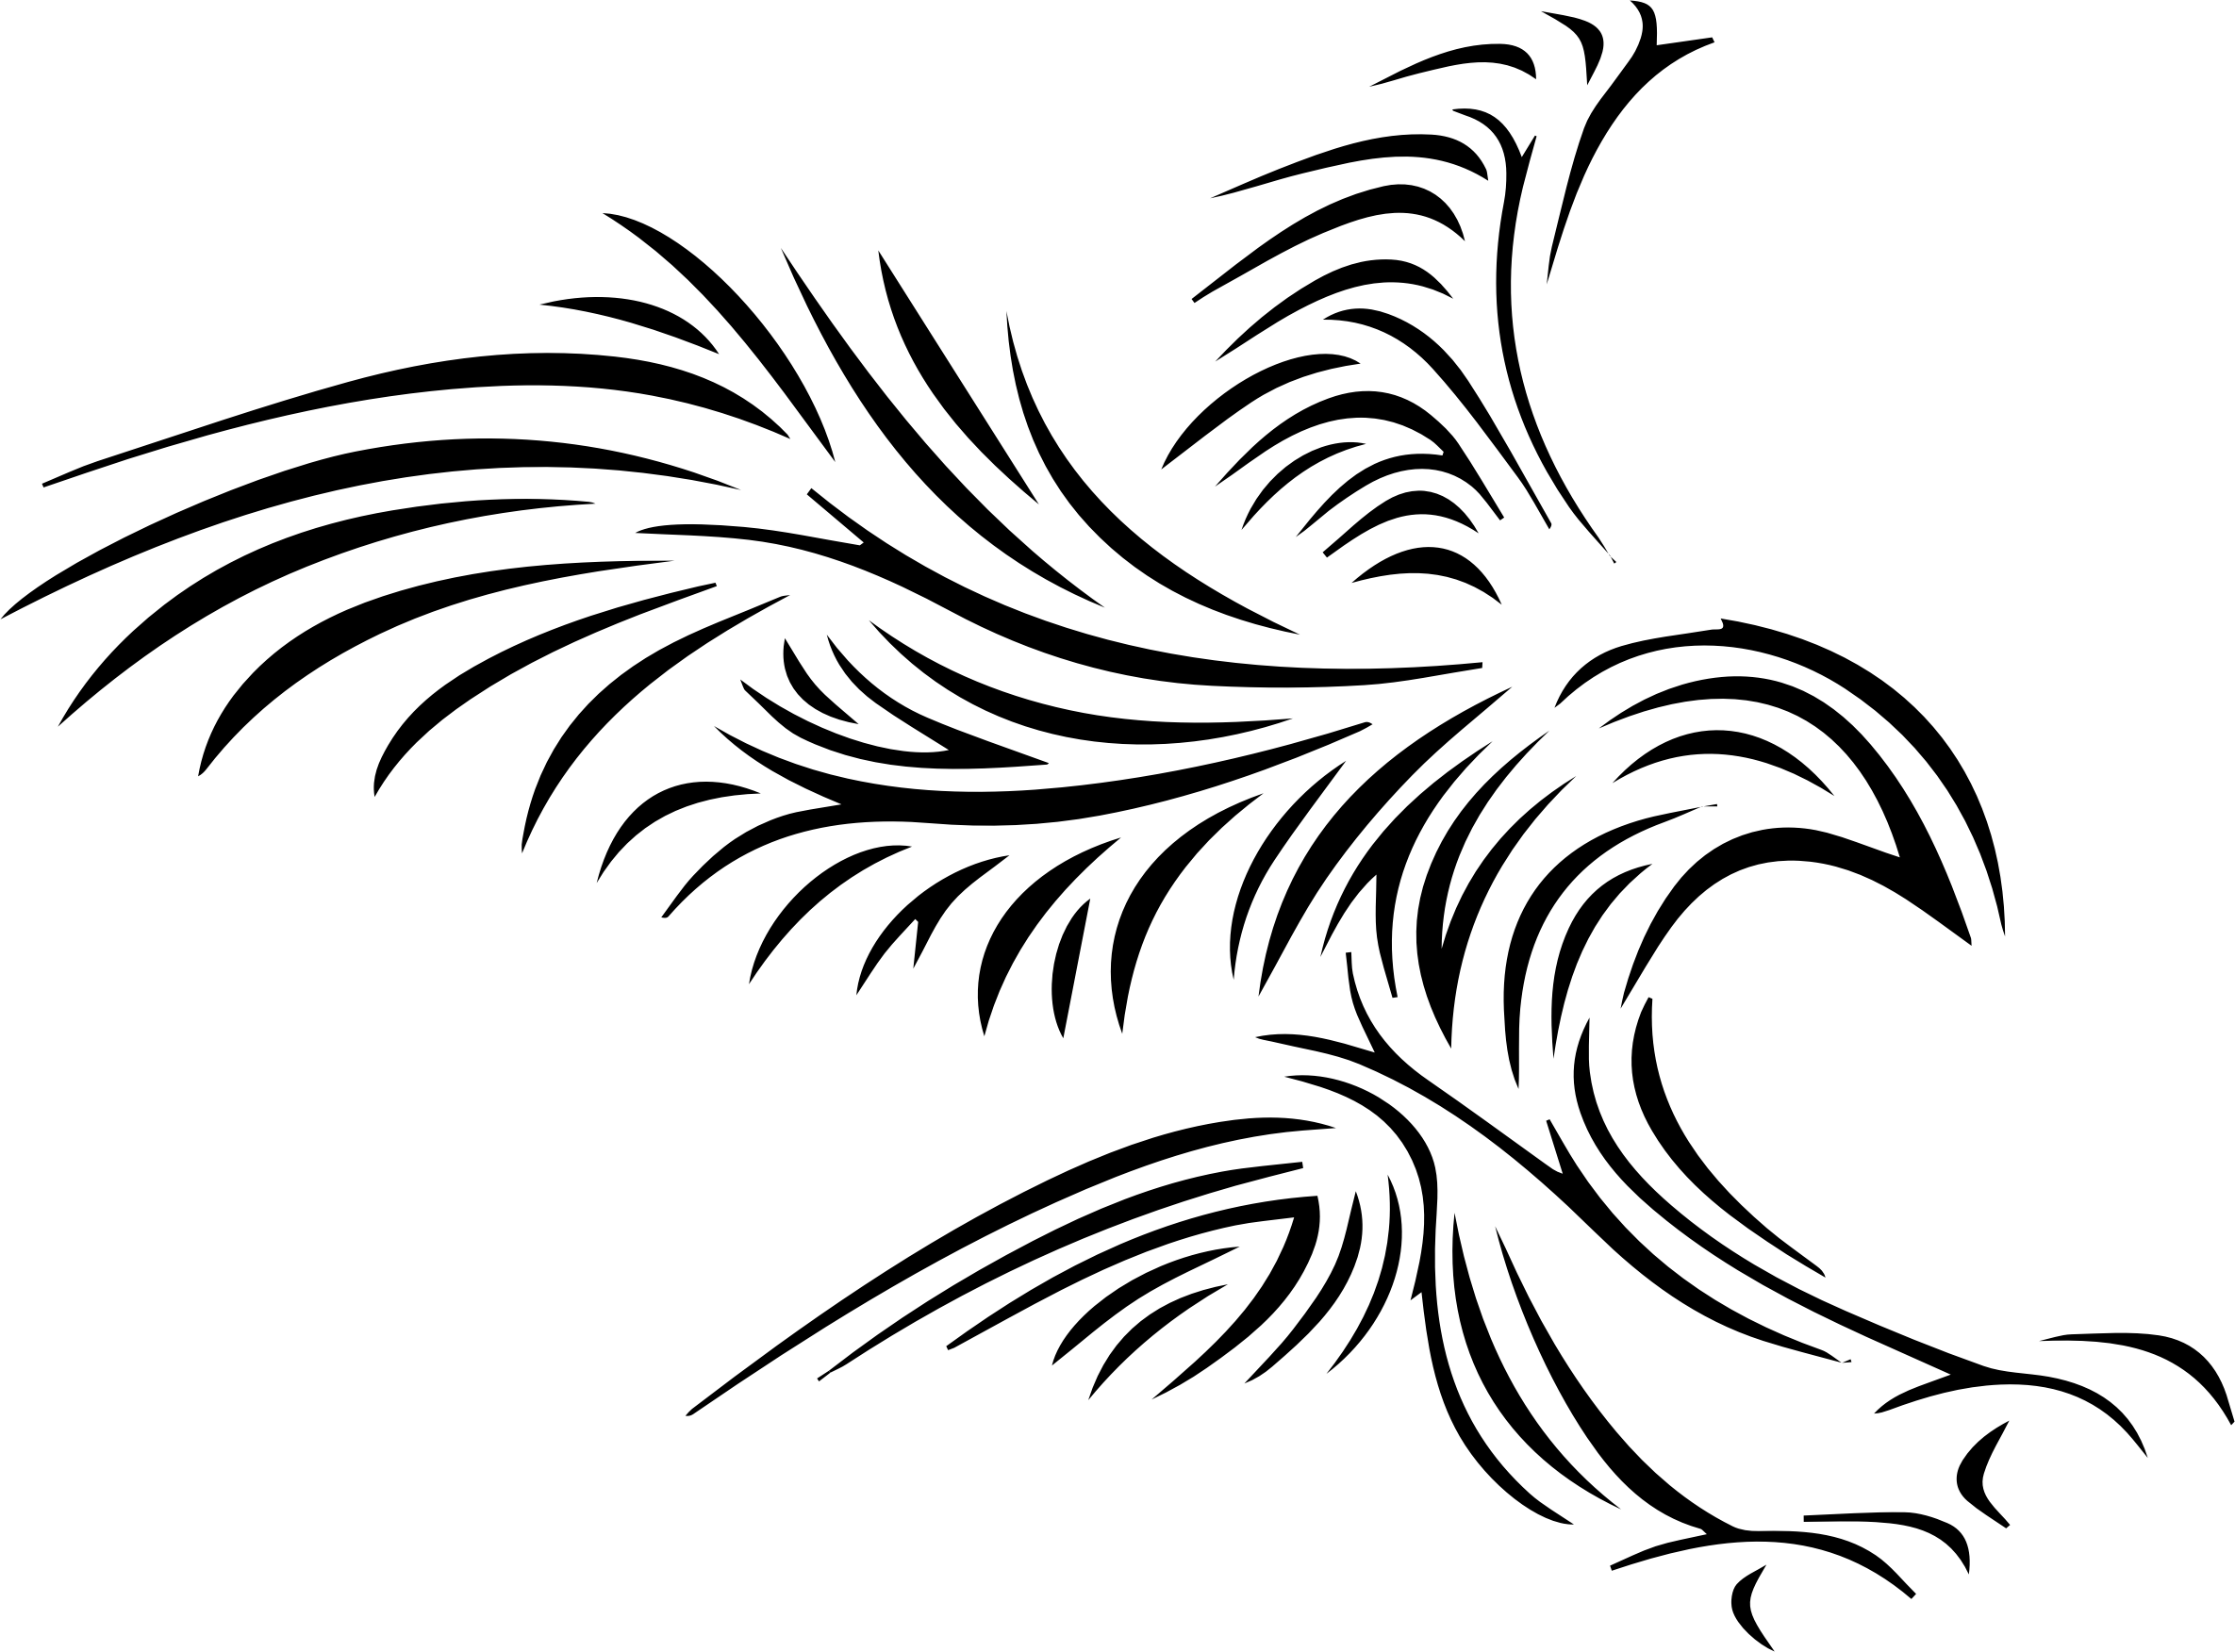 Feather Clipart Tribal Feather Tribal Transparent Free